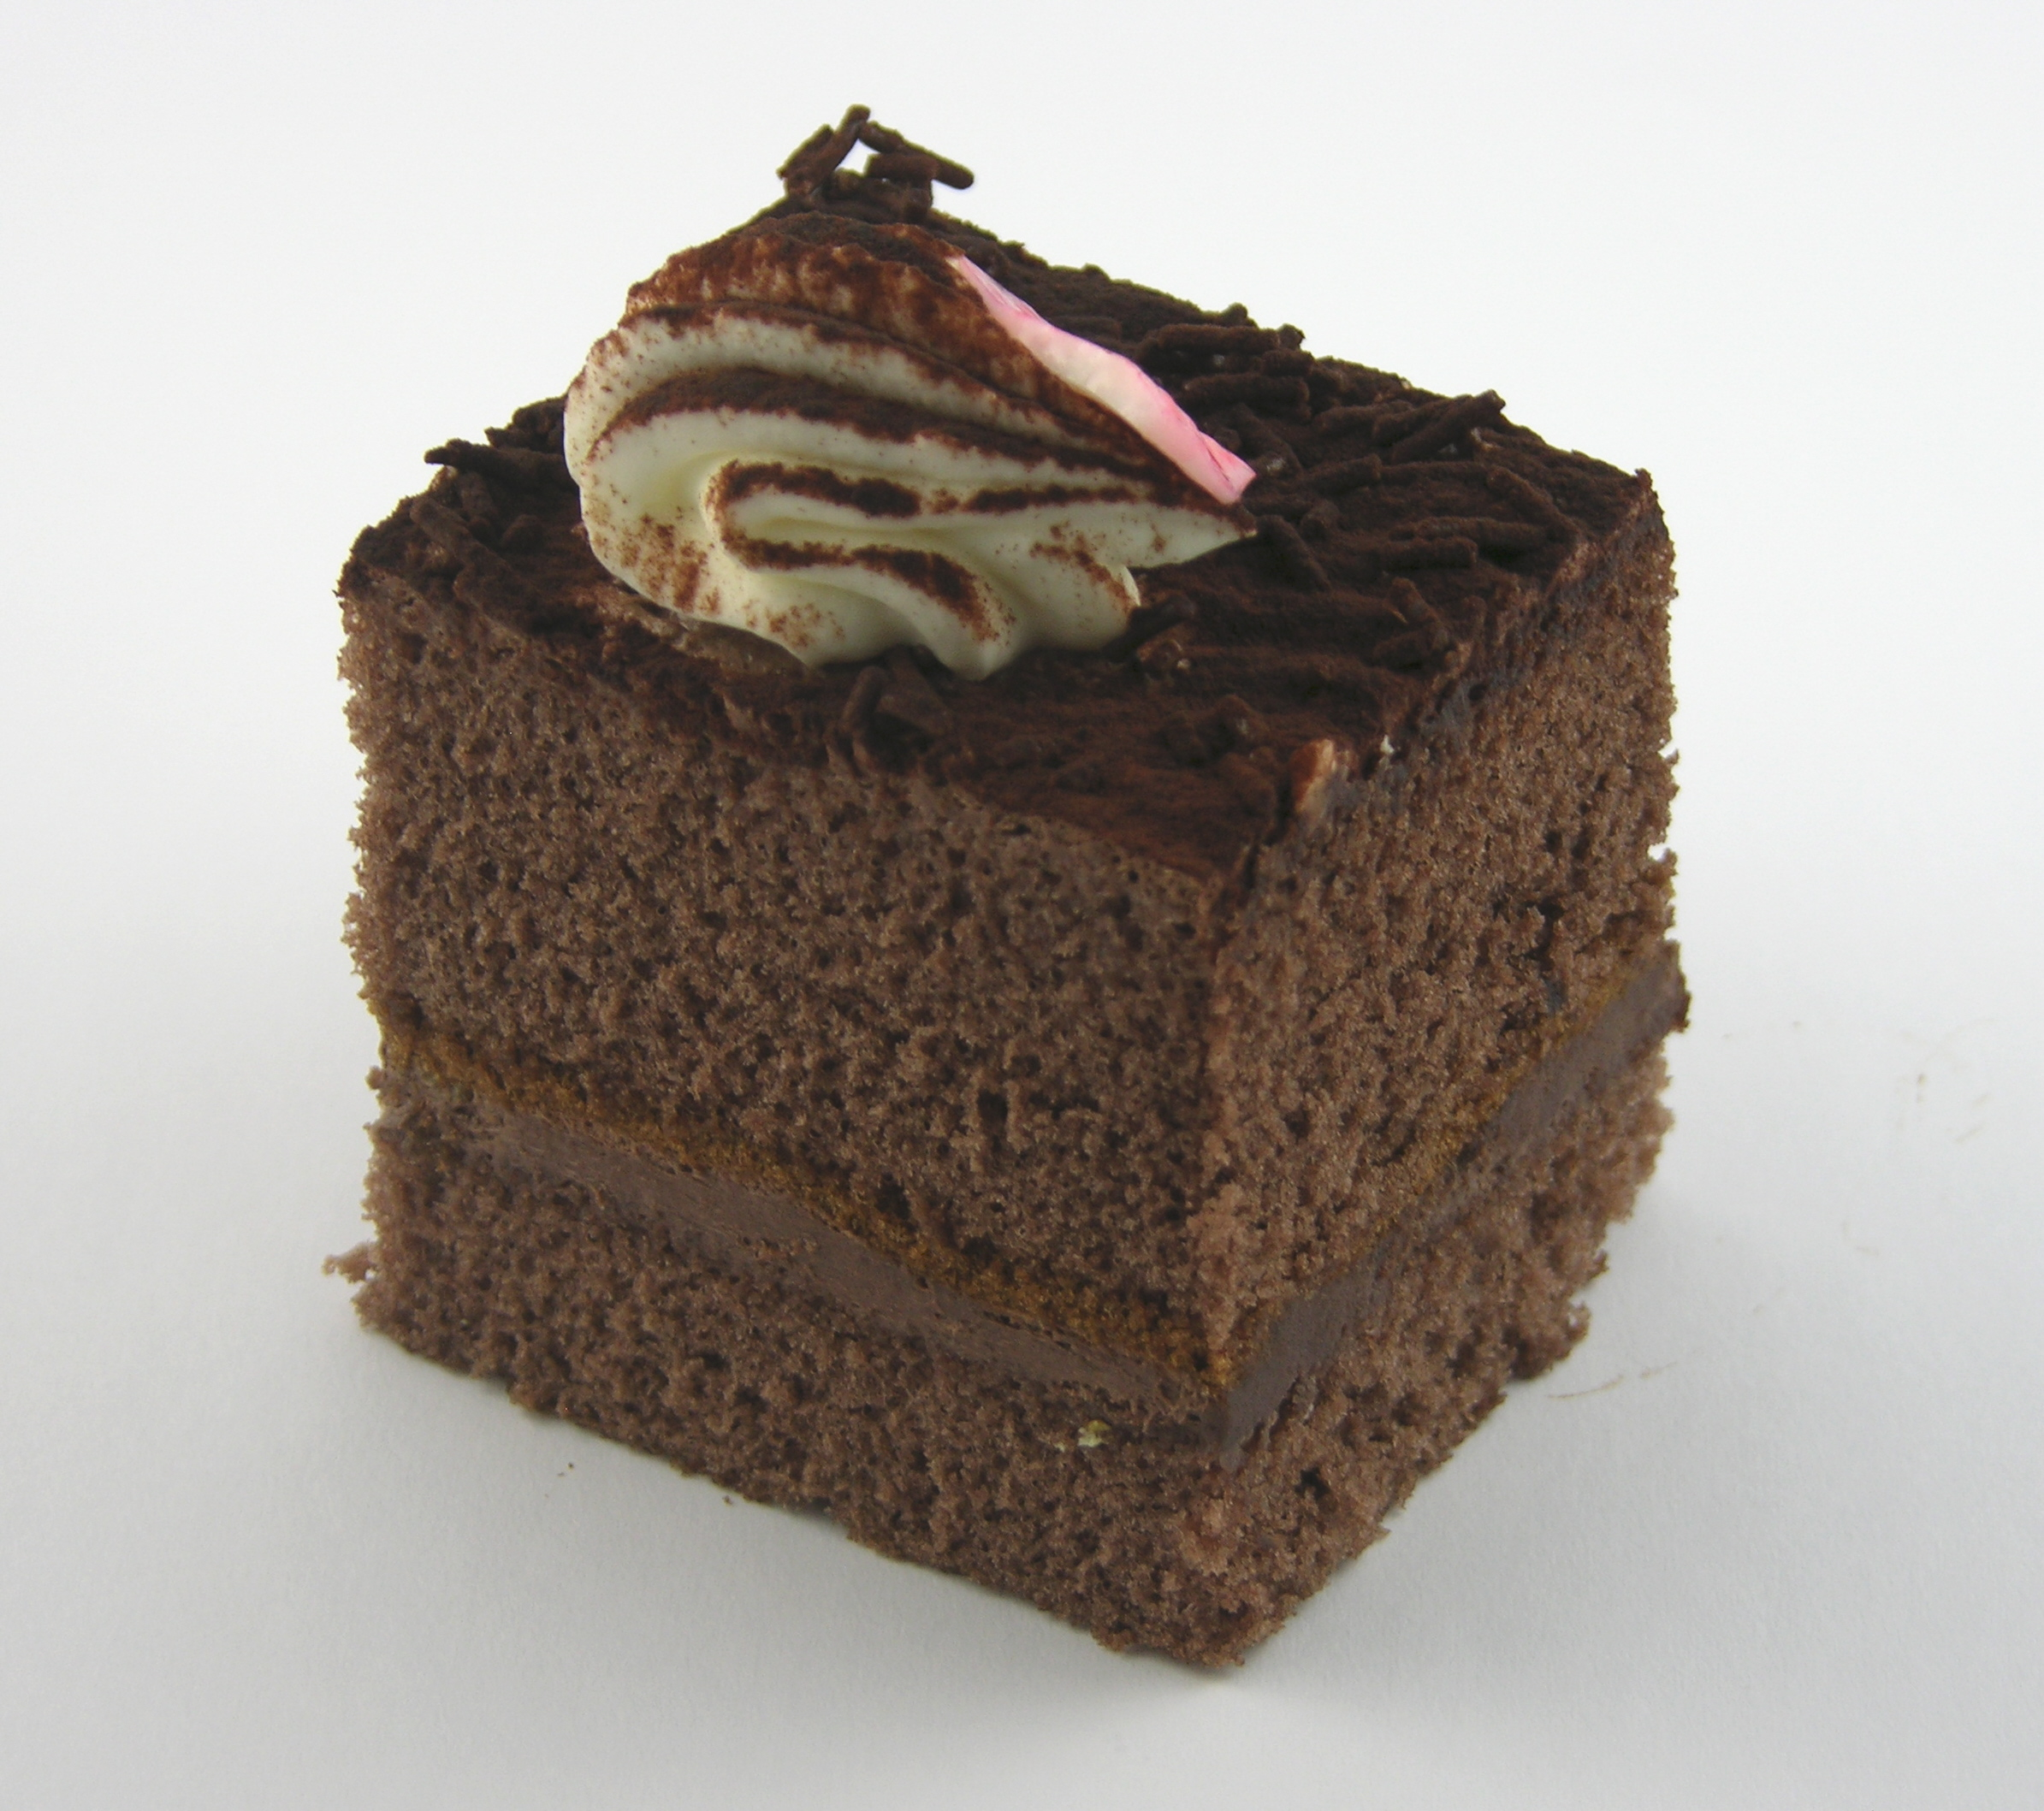 chocolate mousse pastry - photo #24